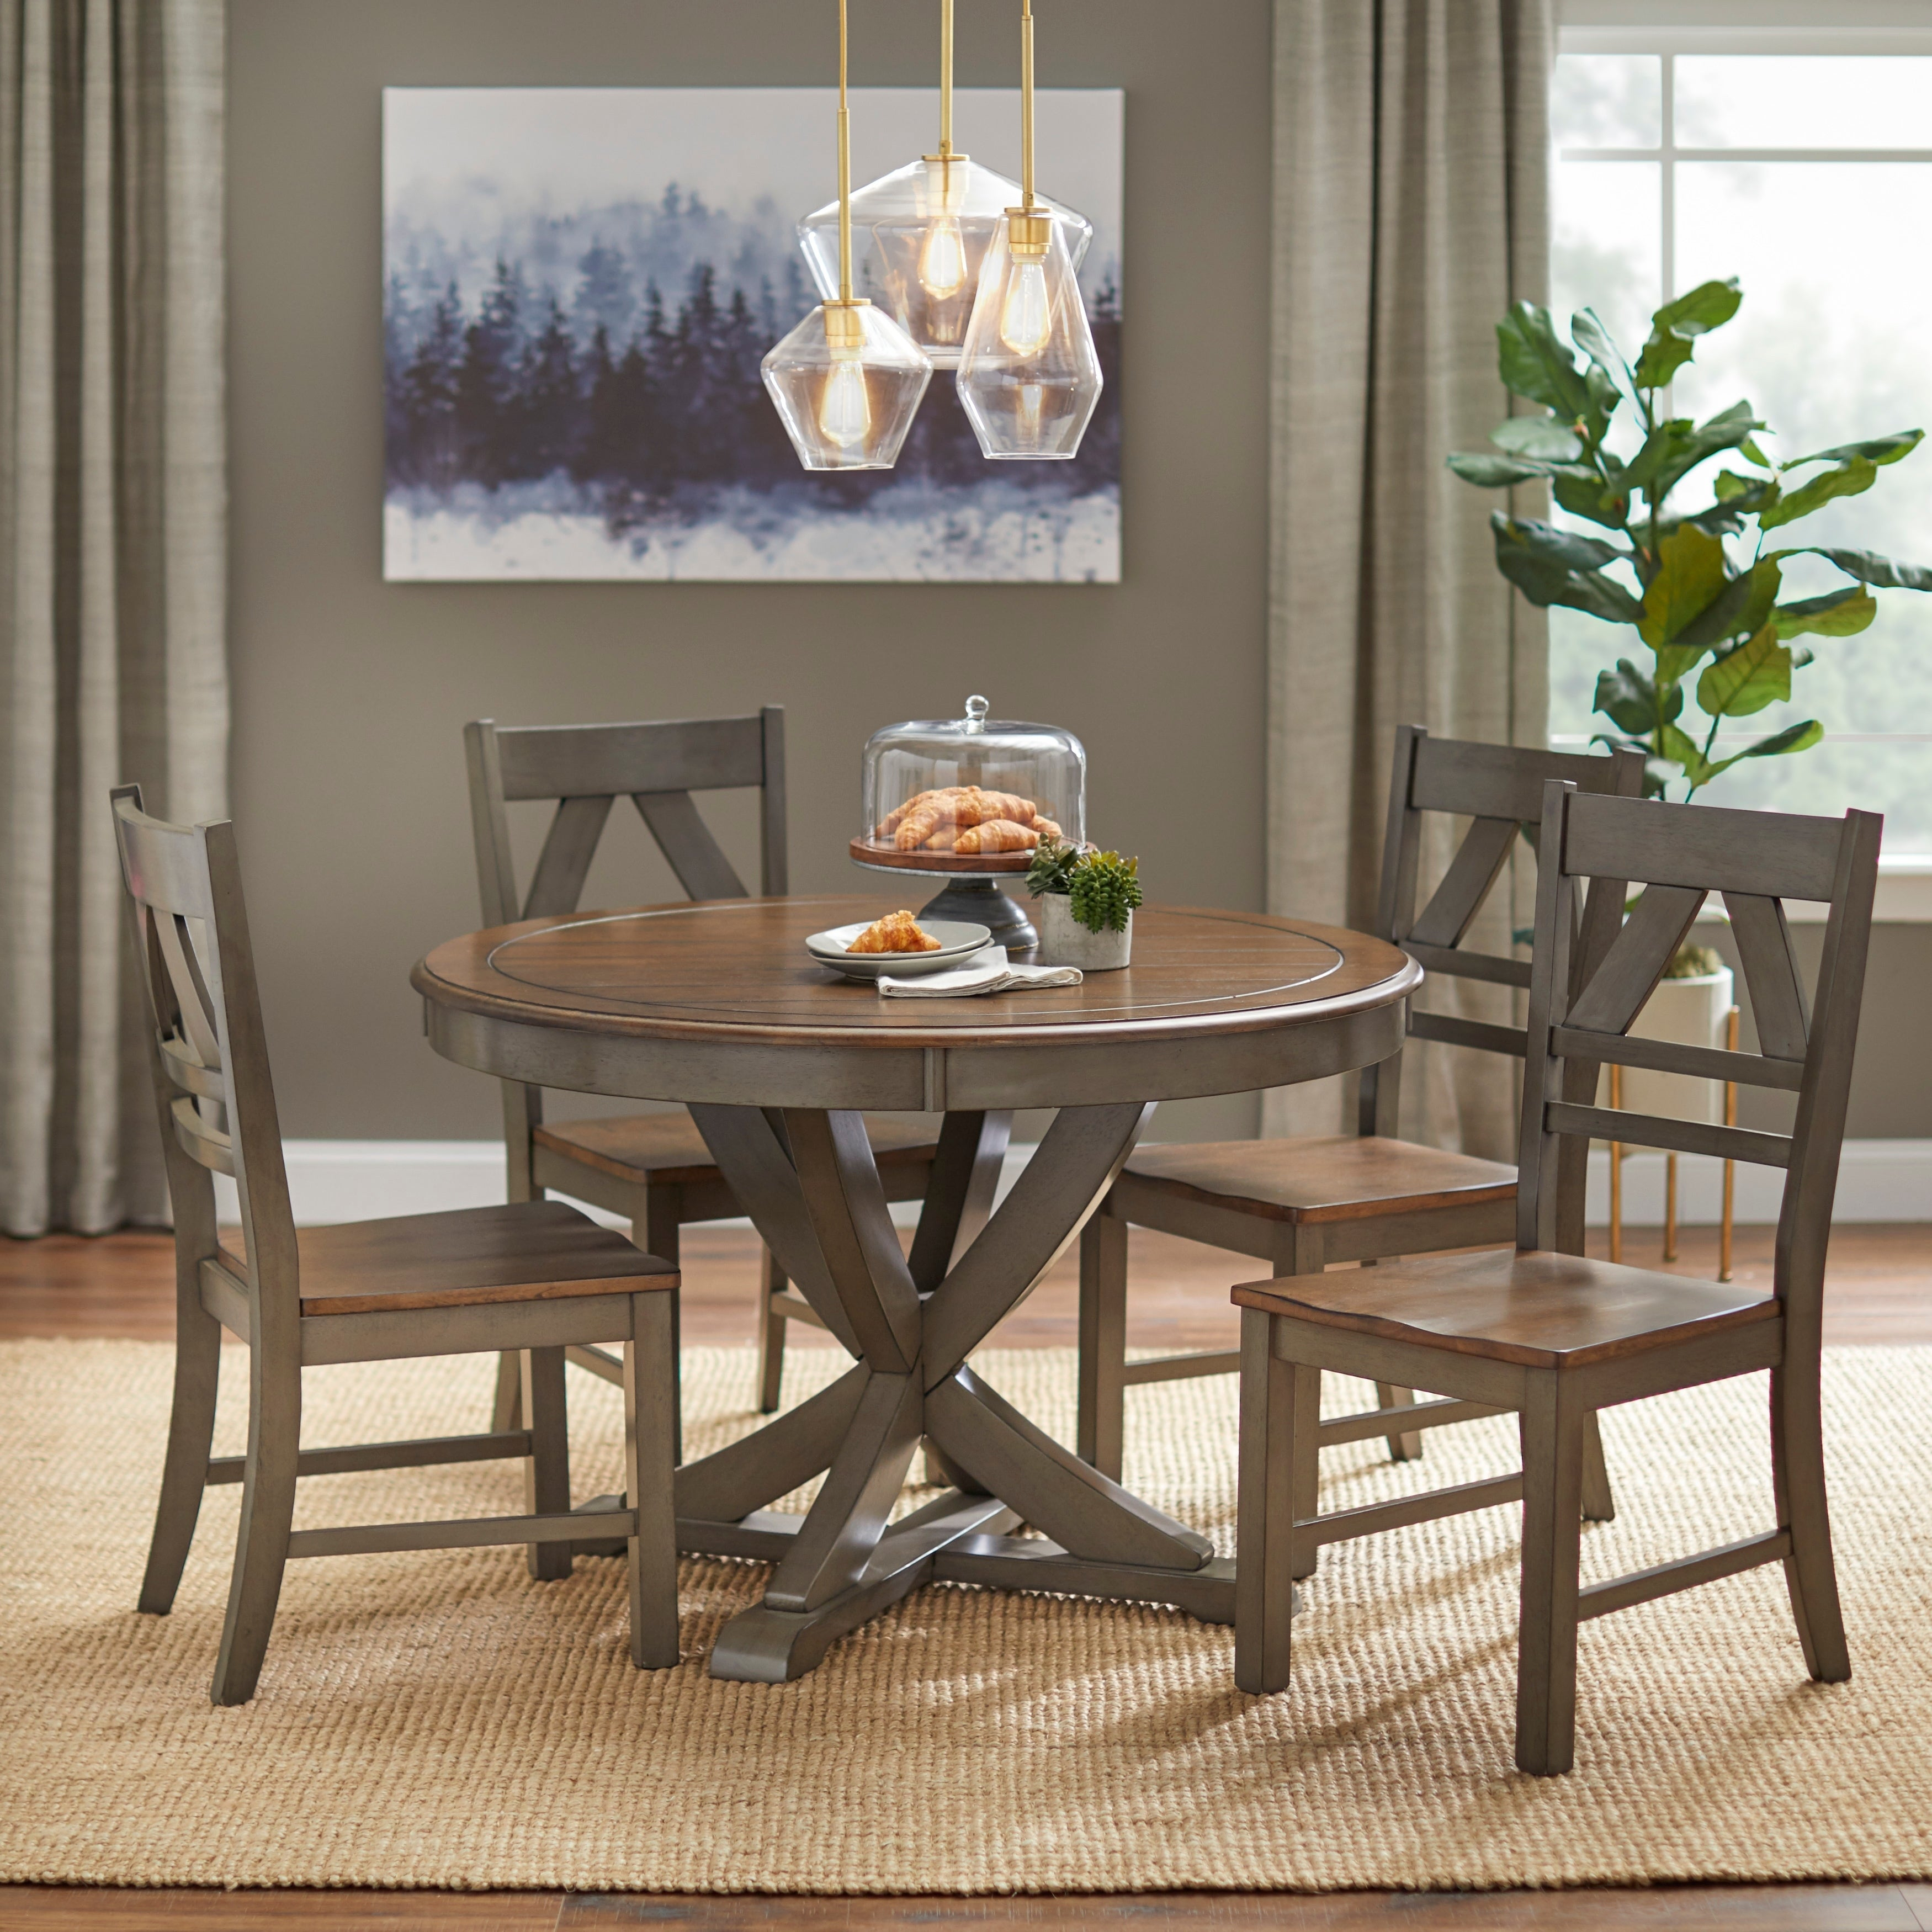 Buy 3 Piece Sets Kitchen & Dining Room Sets Online At Overstock With Recent Frida 3 Piece Dining Table Sets (#4 of 20)